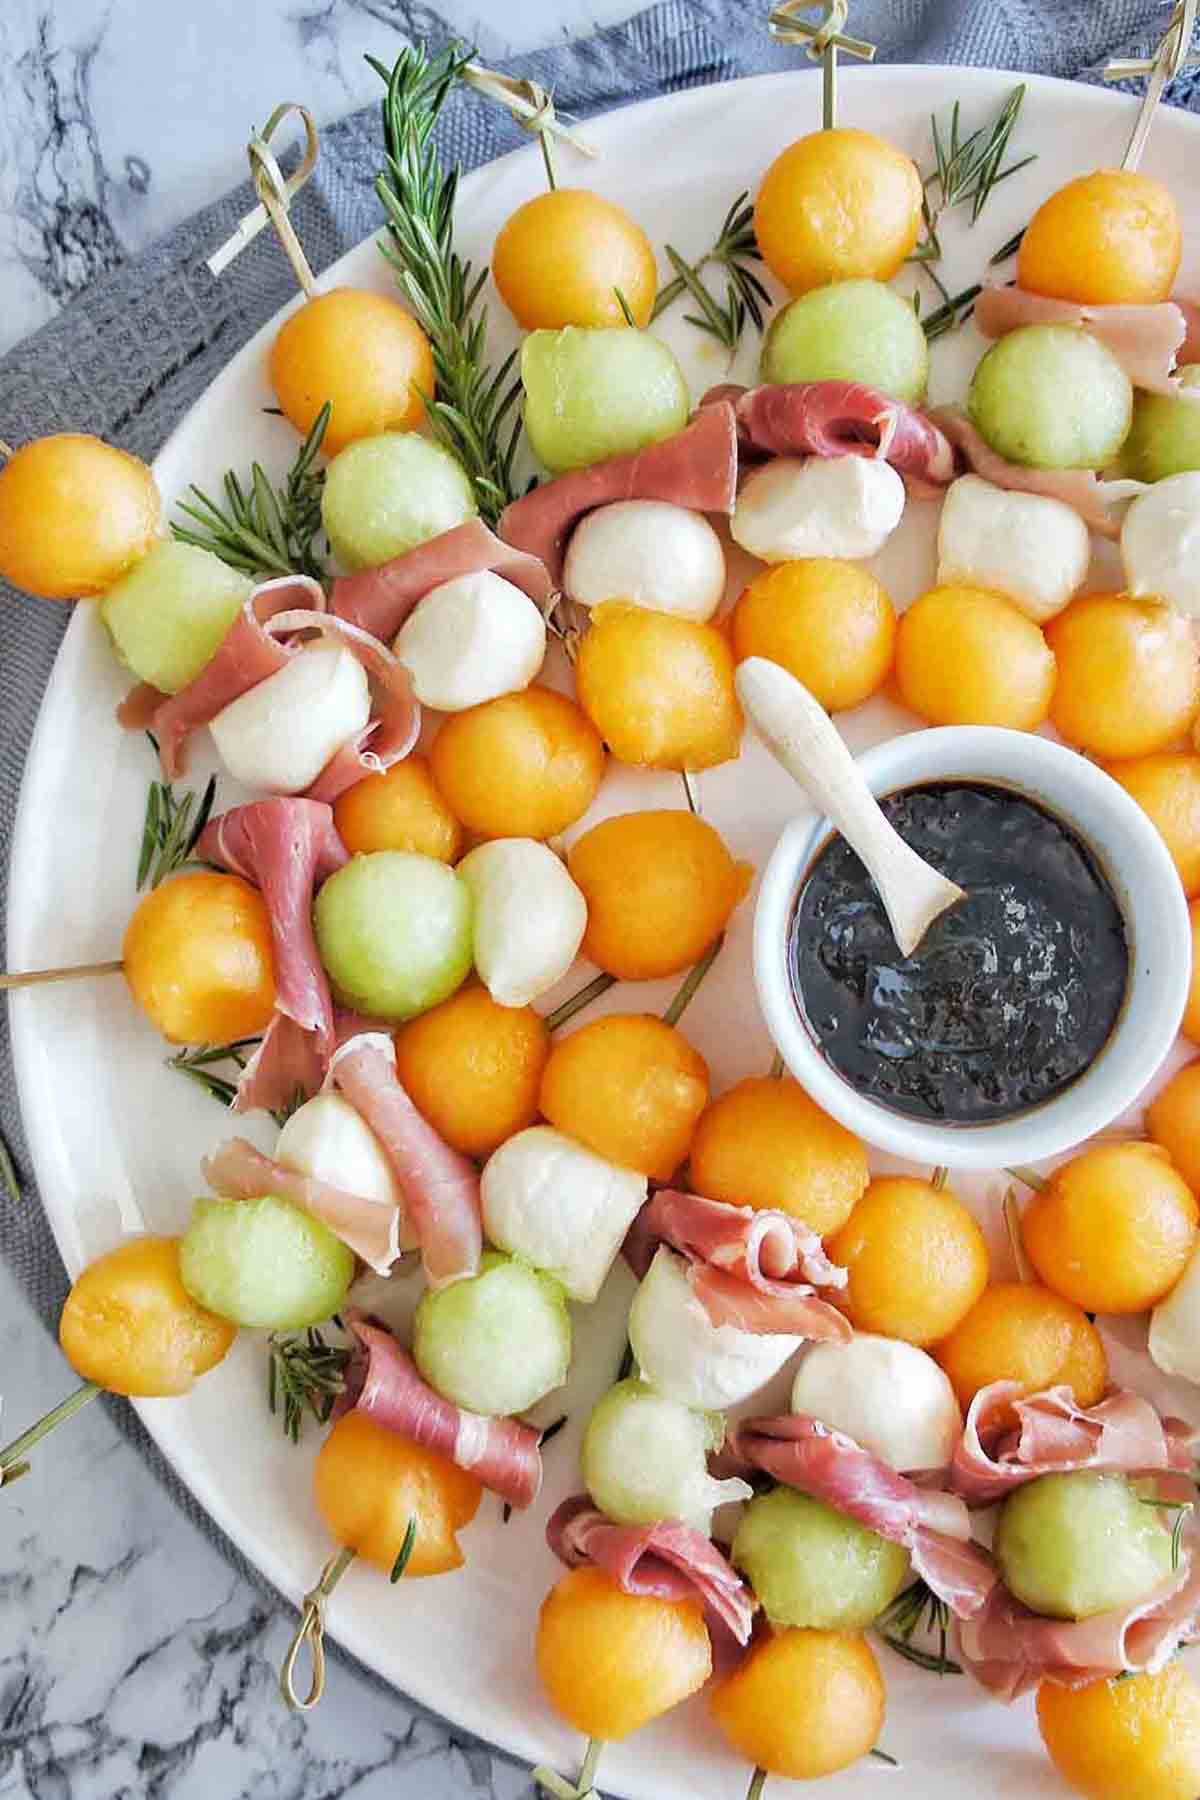 Melon and Prosciutto skewer platter with small bowl of balsamic glaze